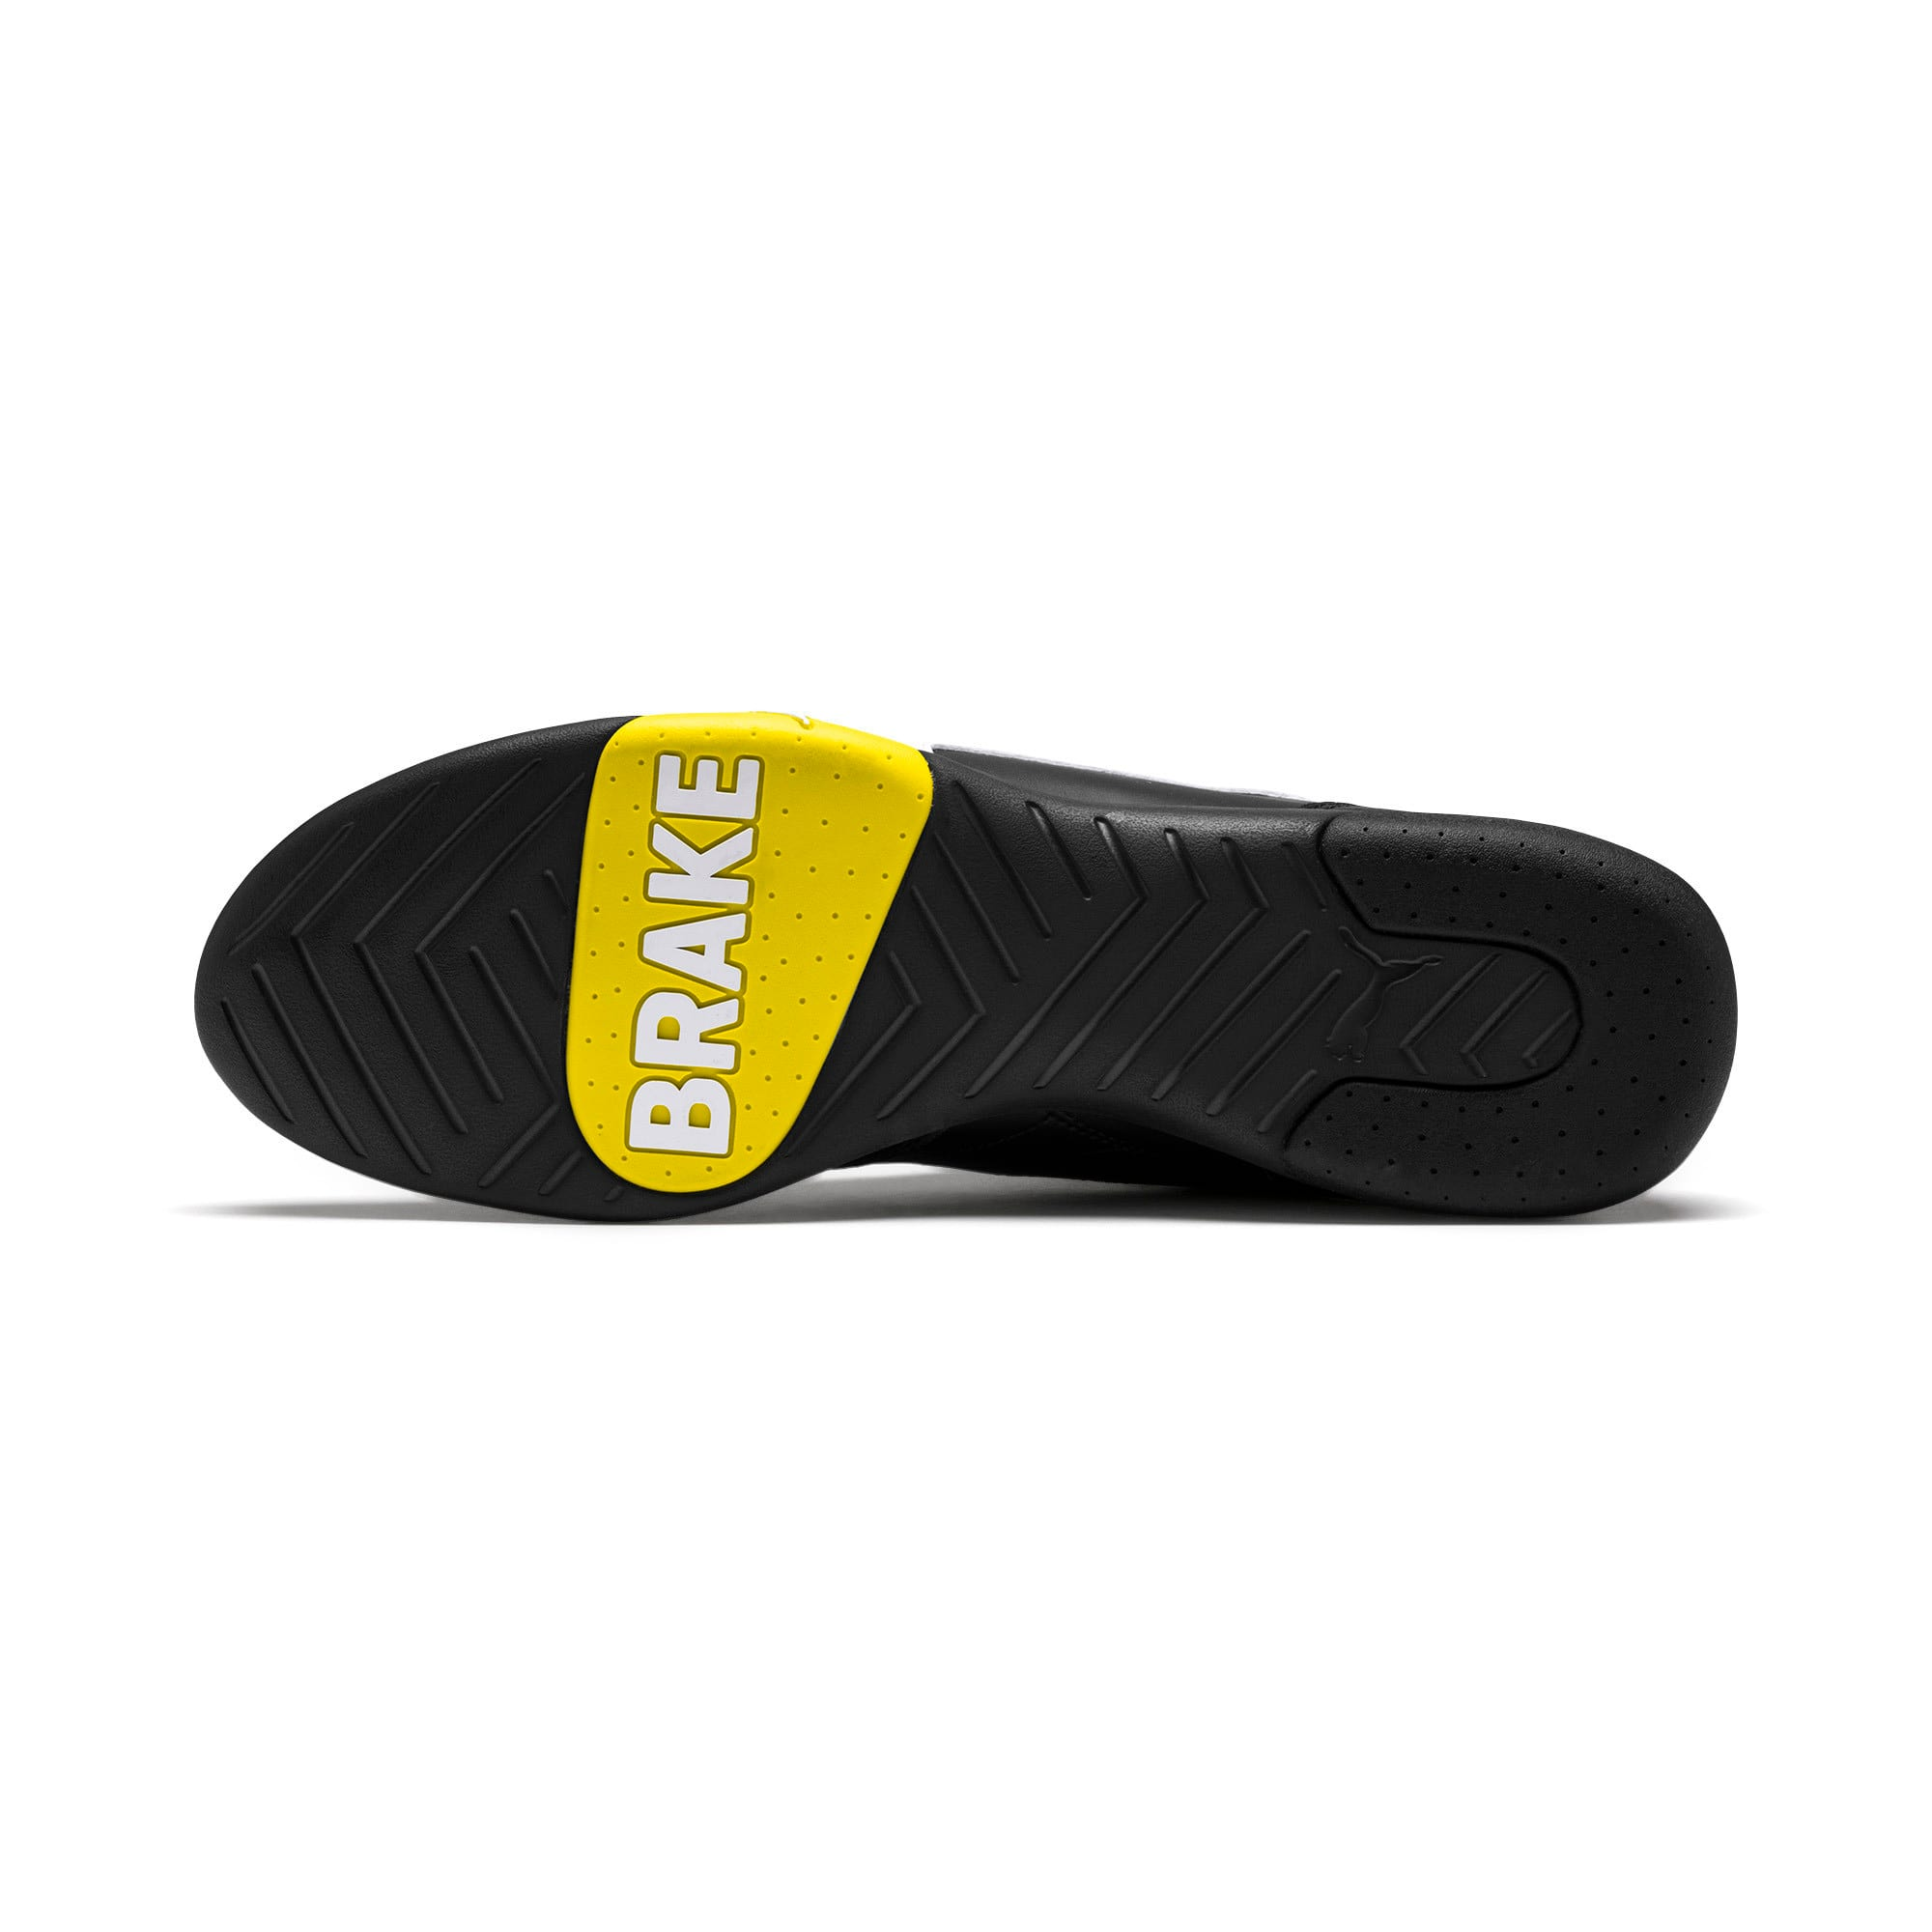 Thumbnail 5 of Ferrari Kart Cat III Sneaker, Black-White-Blazing Yellow, medium